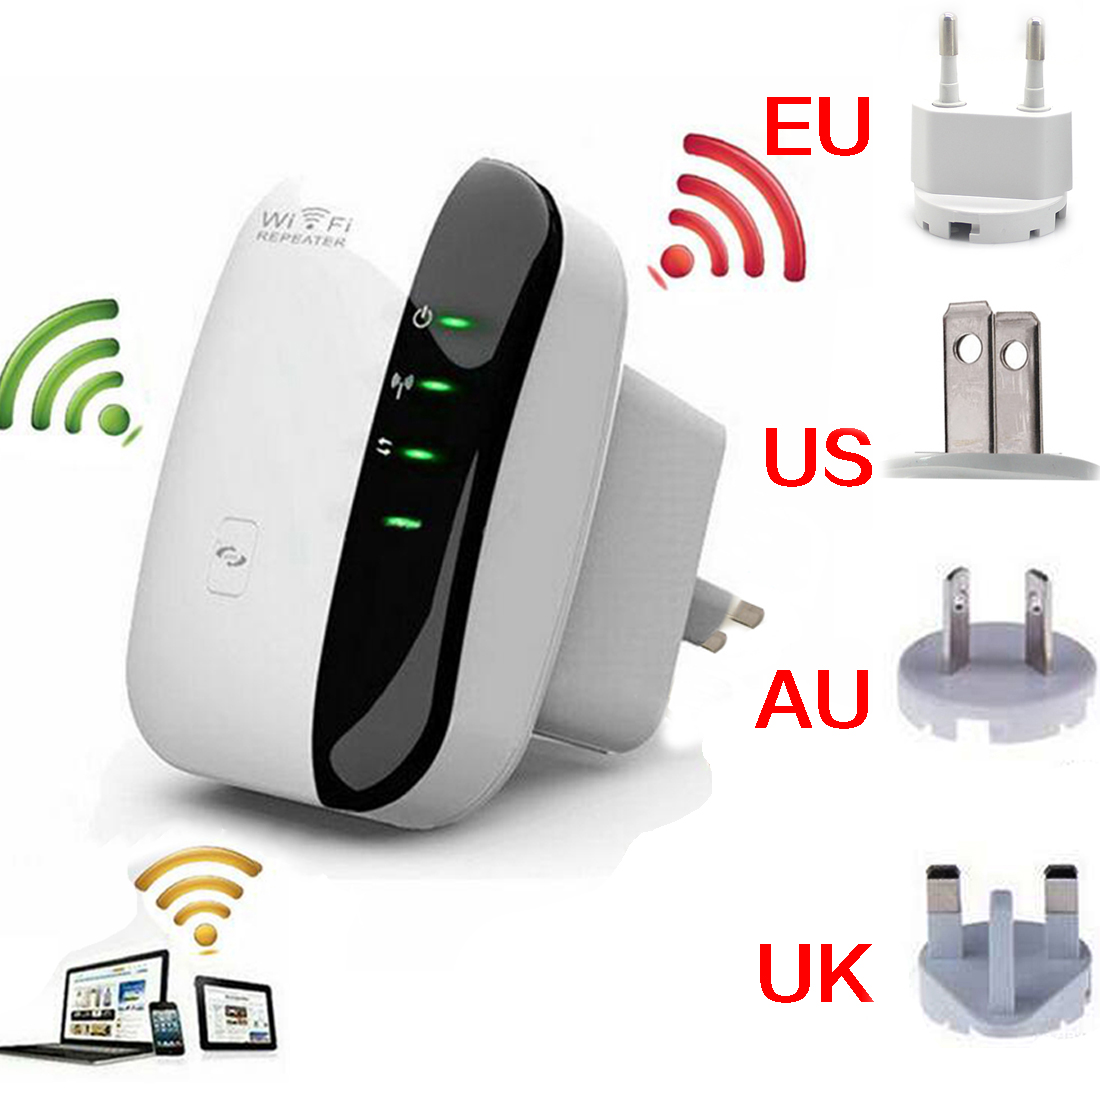 Wireless-N Wifi Repeater 802.11n/b/g Network Wi Fi Routers 300Mbps Range Expander Signal Booster Extender WIFI Ap Wps Encryption(China (Mainland))